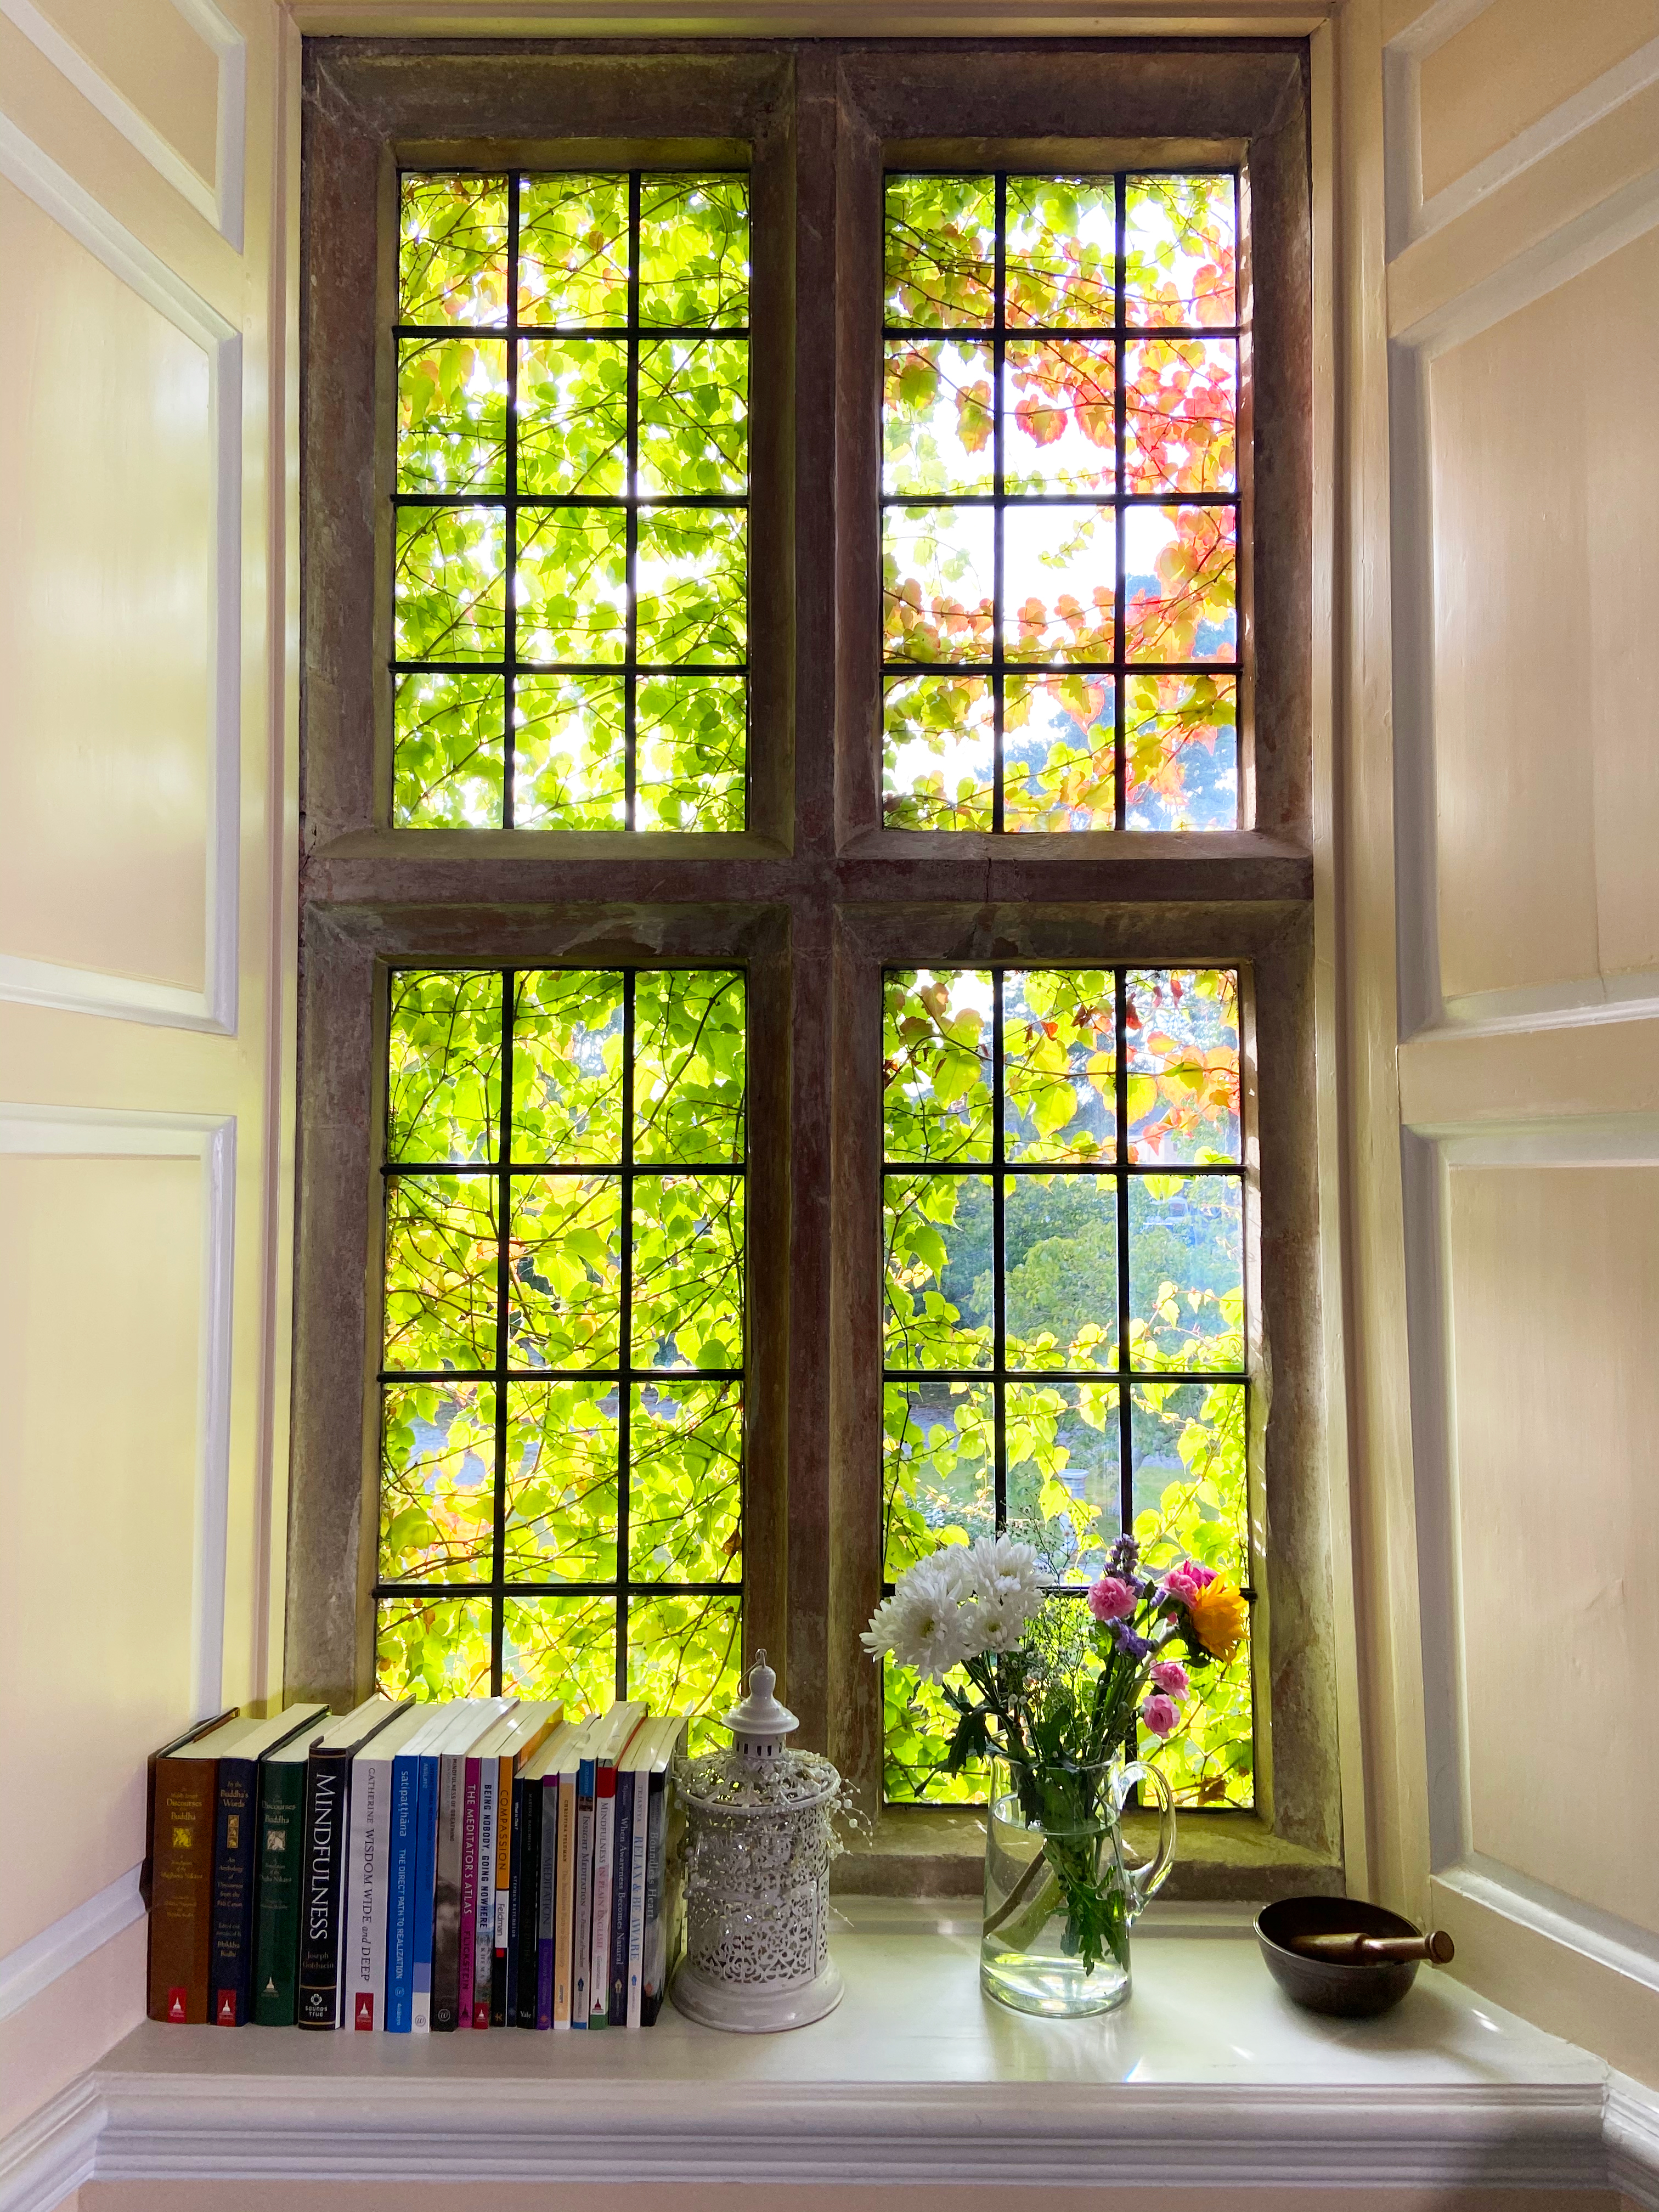 A window overgrown with ivy